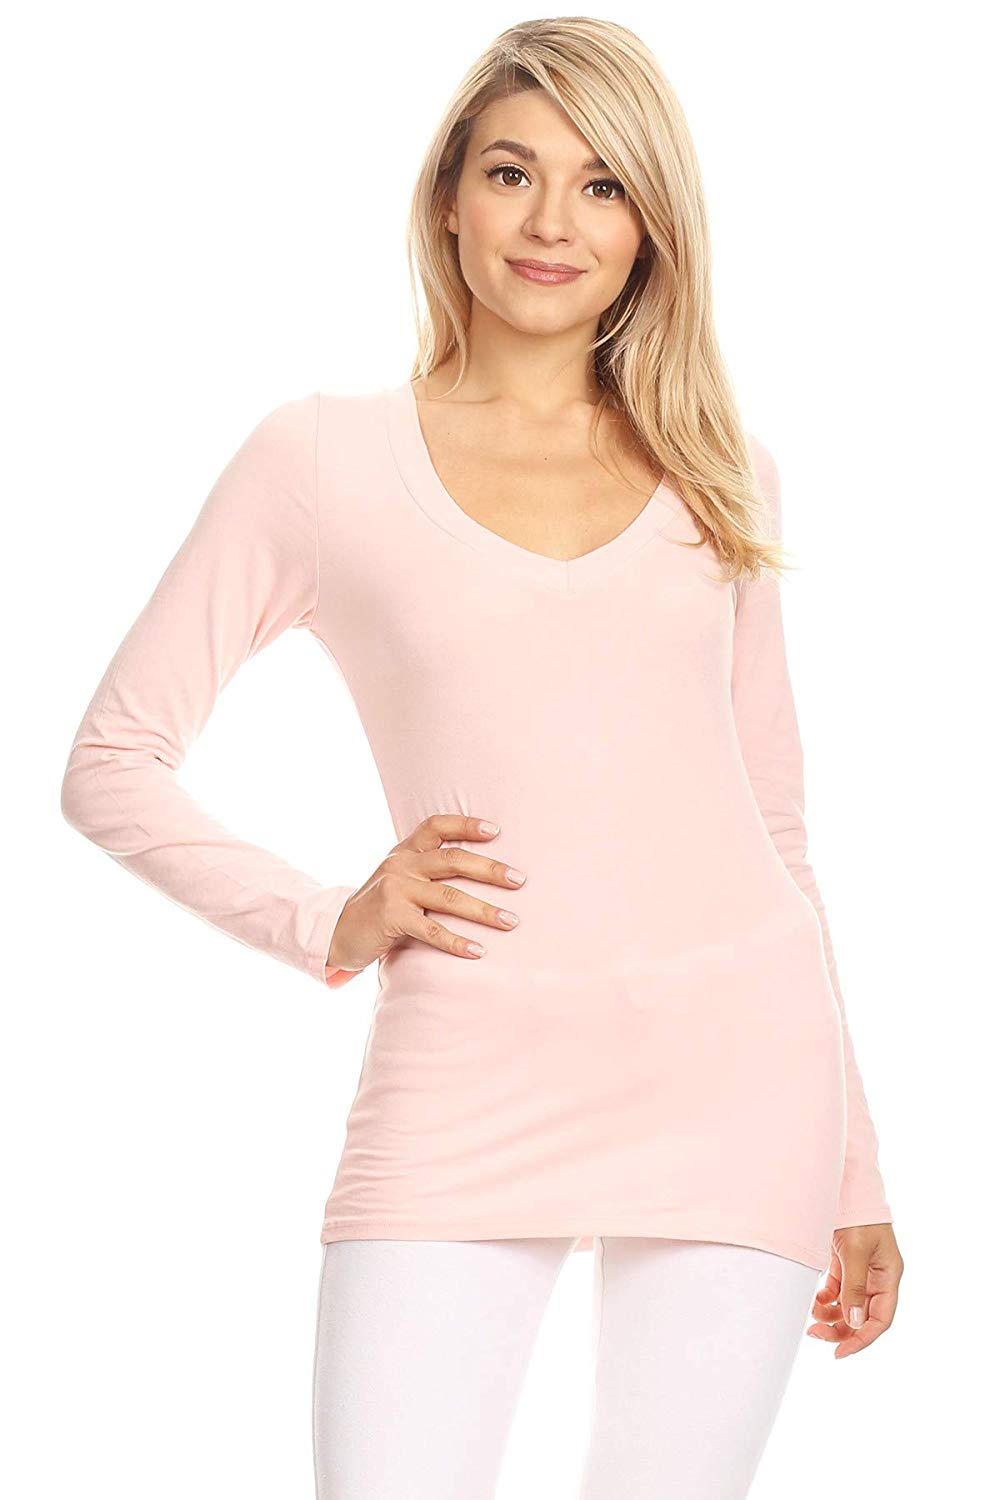 Ambiance Apparel Women's Long Sleeve V-Neck Pull On Lightweight Cotton Sweater